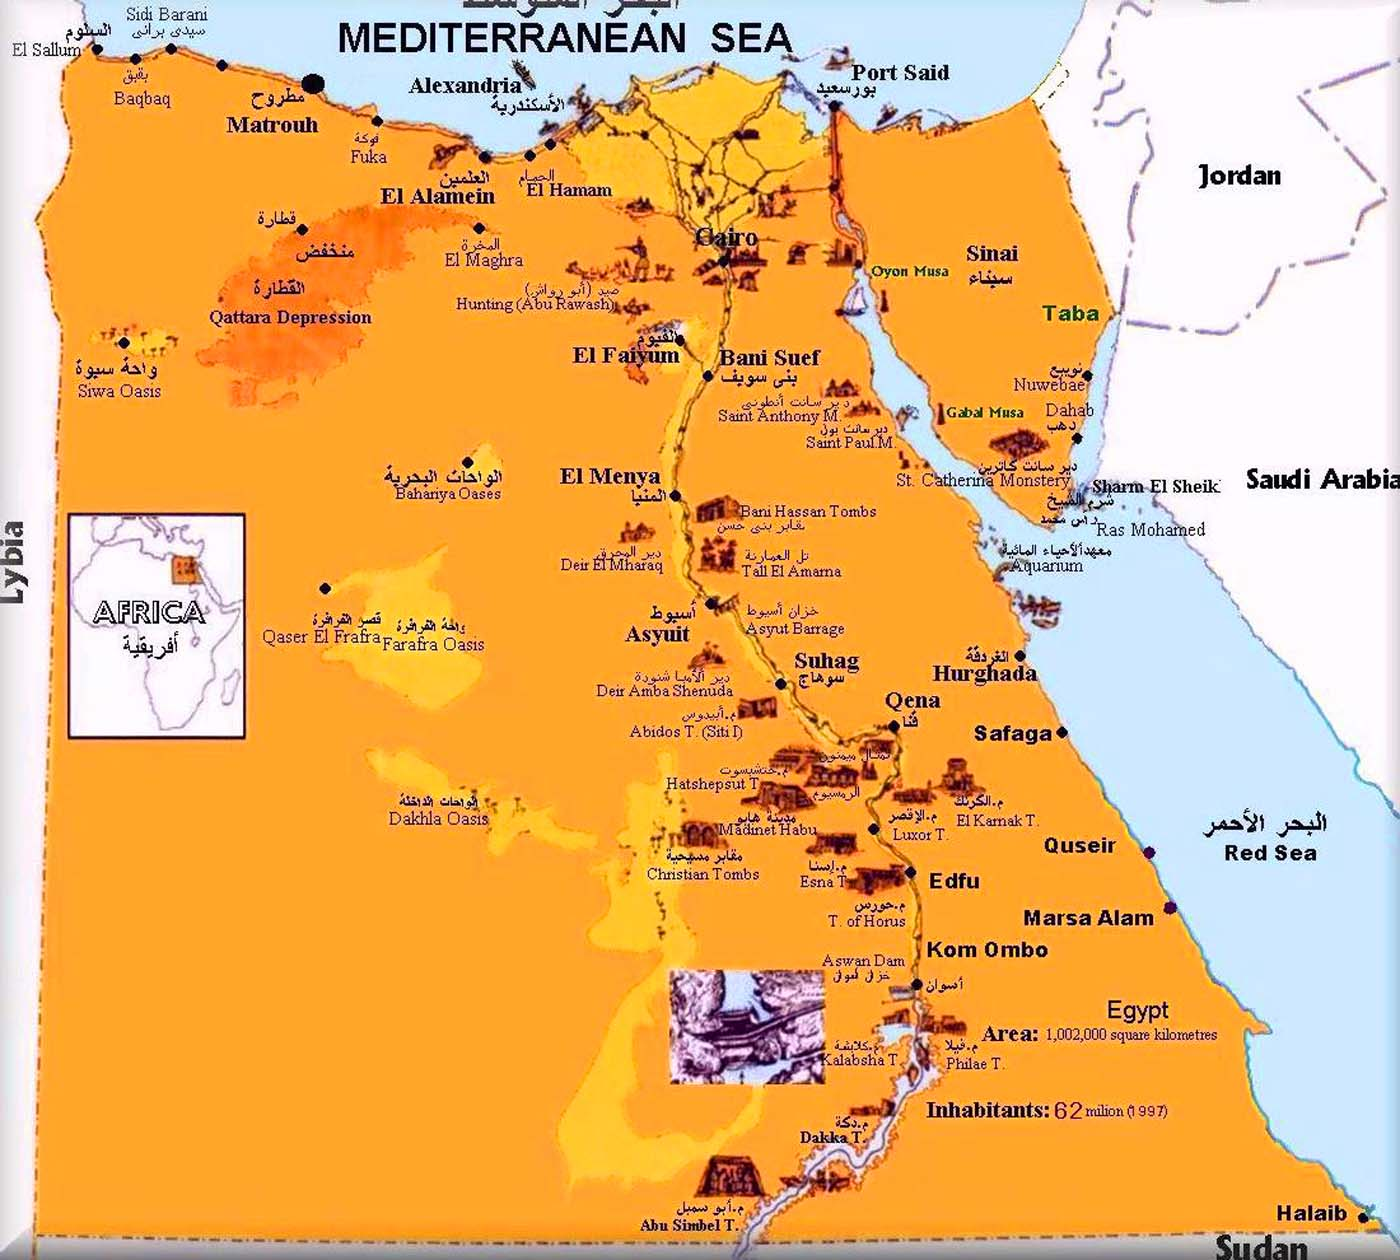 map-of-egypt-in-arabic-and-english.jpg